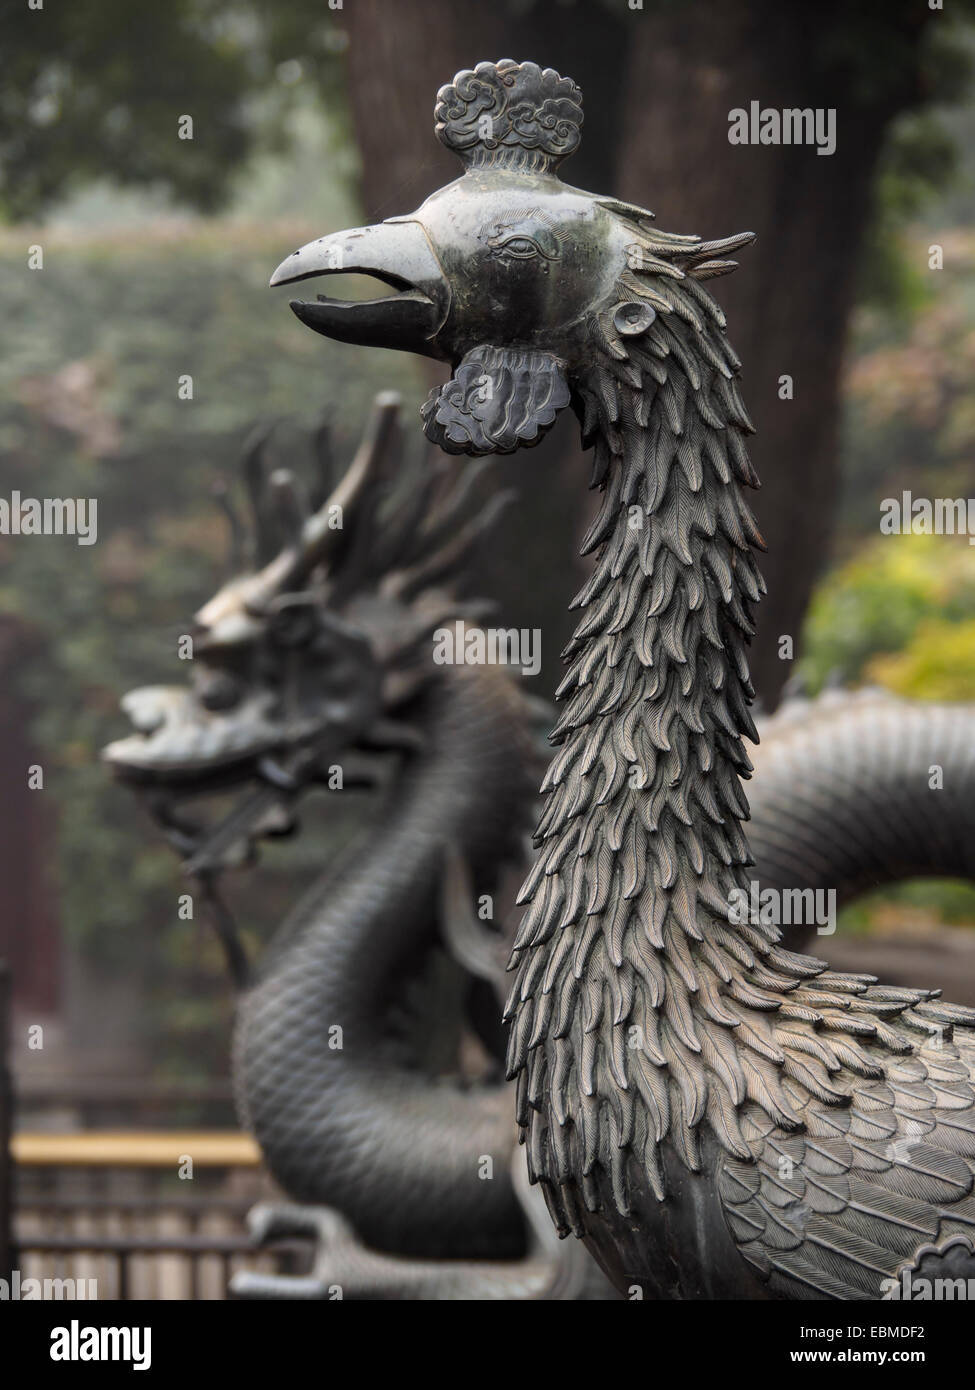 Phoenix and dragon statues at the Summer Palace in Beijing, China - Stock Image